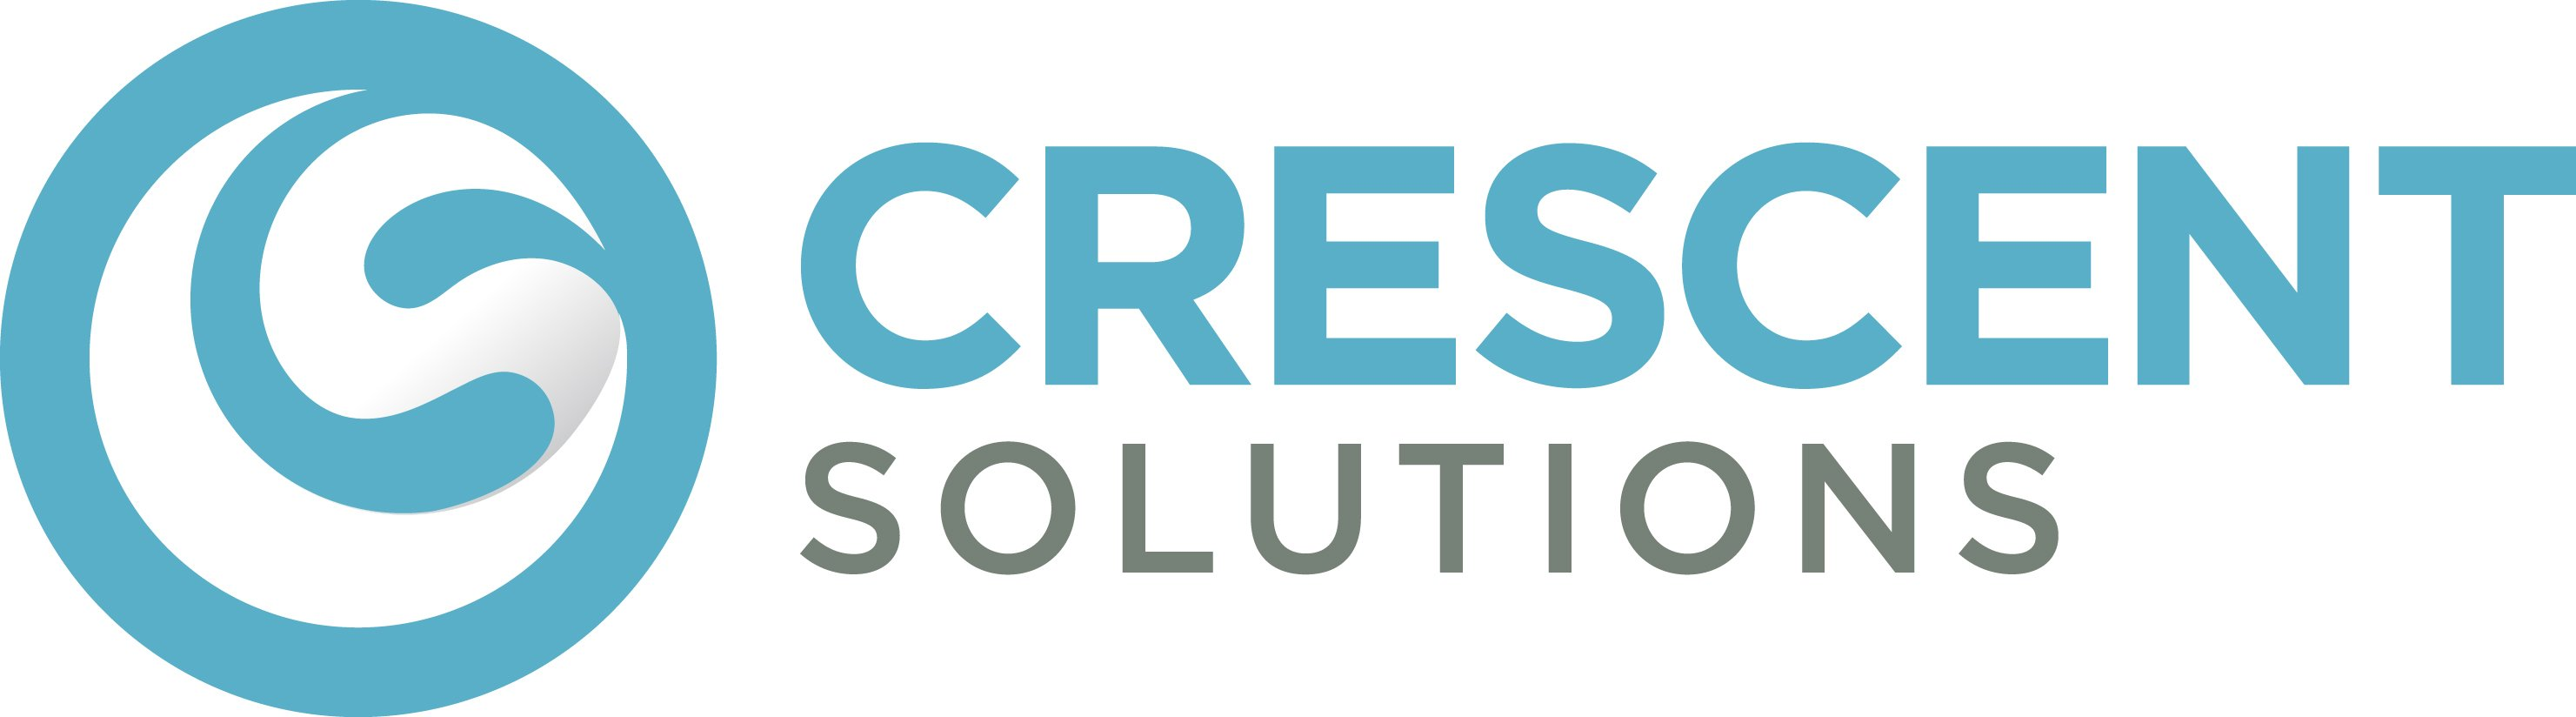 Crescent Solutions Inc